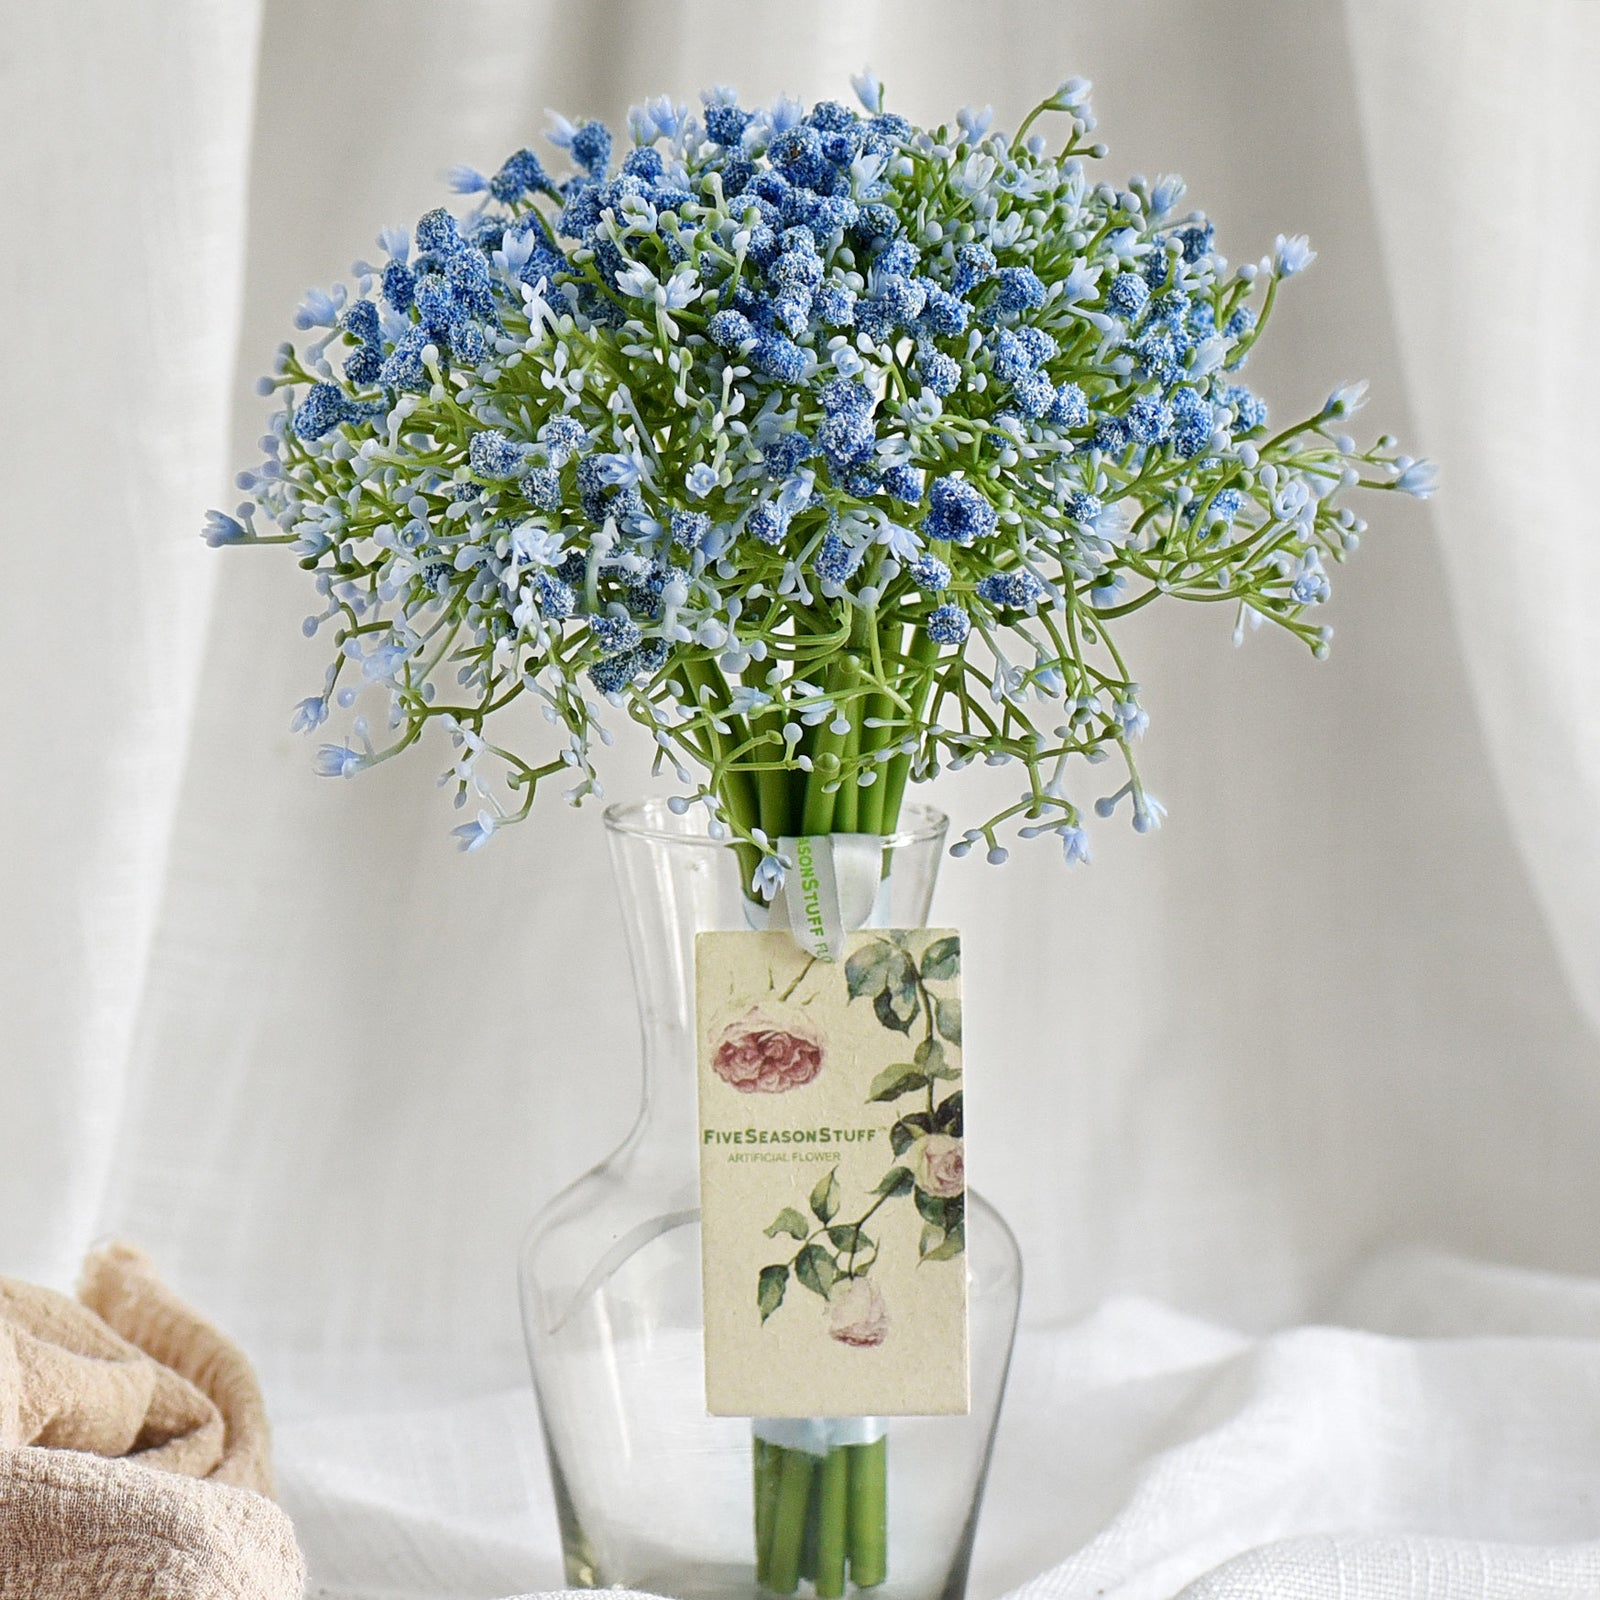 Artificial Flowers Home Artificial Silk Flower Bouquet Of 6 Baby Breath Flowers And 6 Silver Dollars Eucalyptus Arrangement Floral Bouquet For Wedding Bridal Spring Wreath Home Artificial Decoration Dinner Table Centerpieces